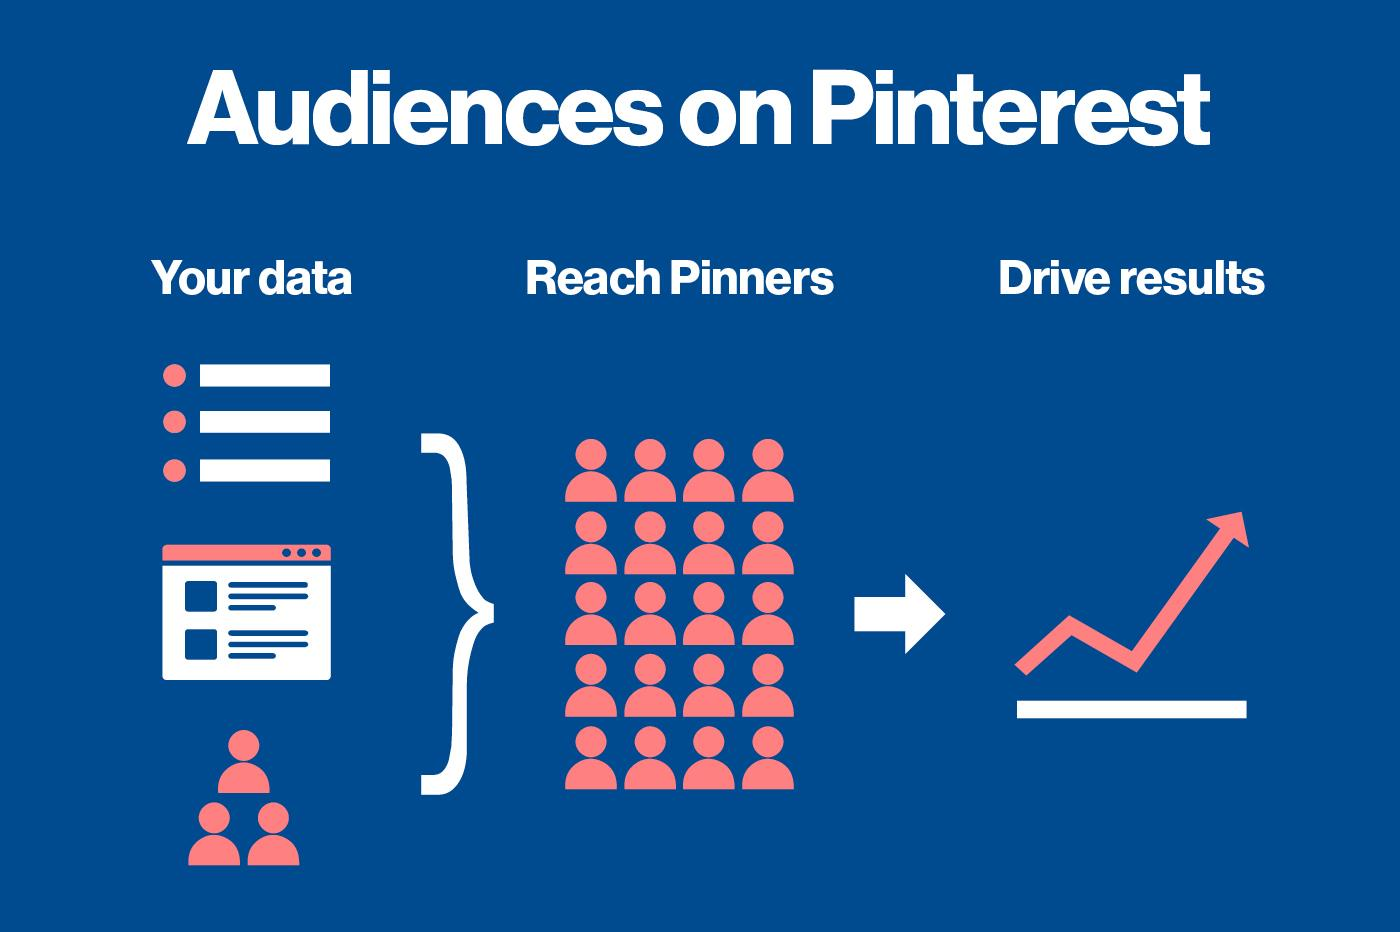 How Pinterest uses your data